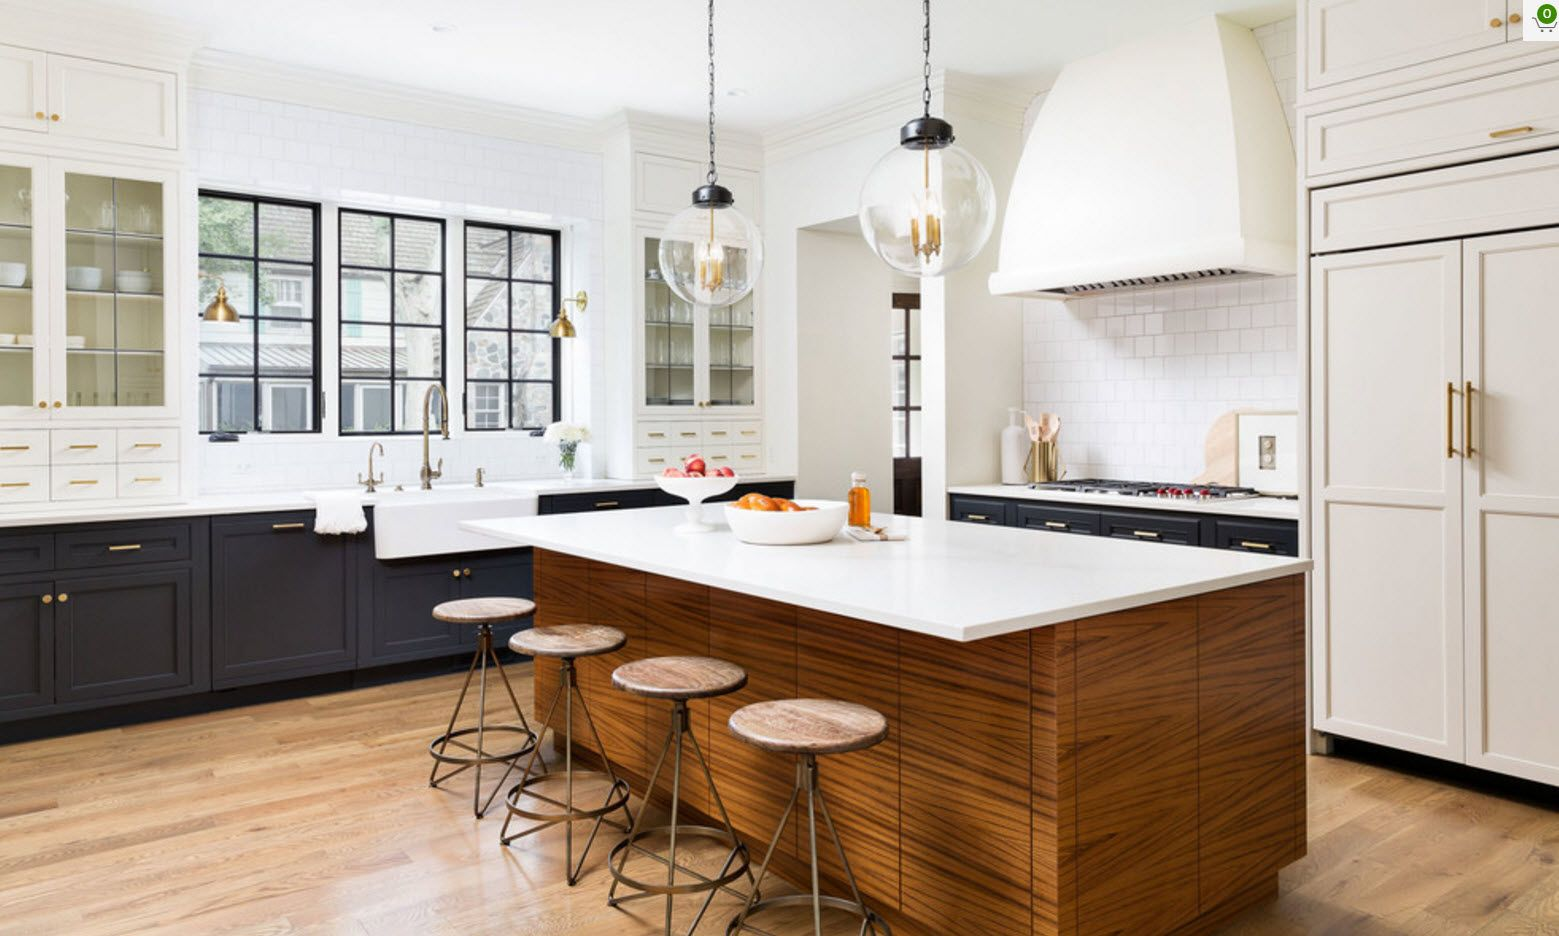 Wooden sides of the kitchen island and round bar stools